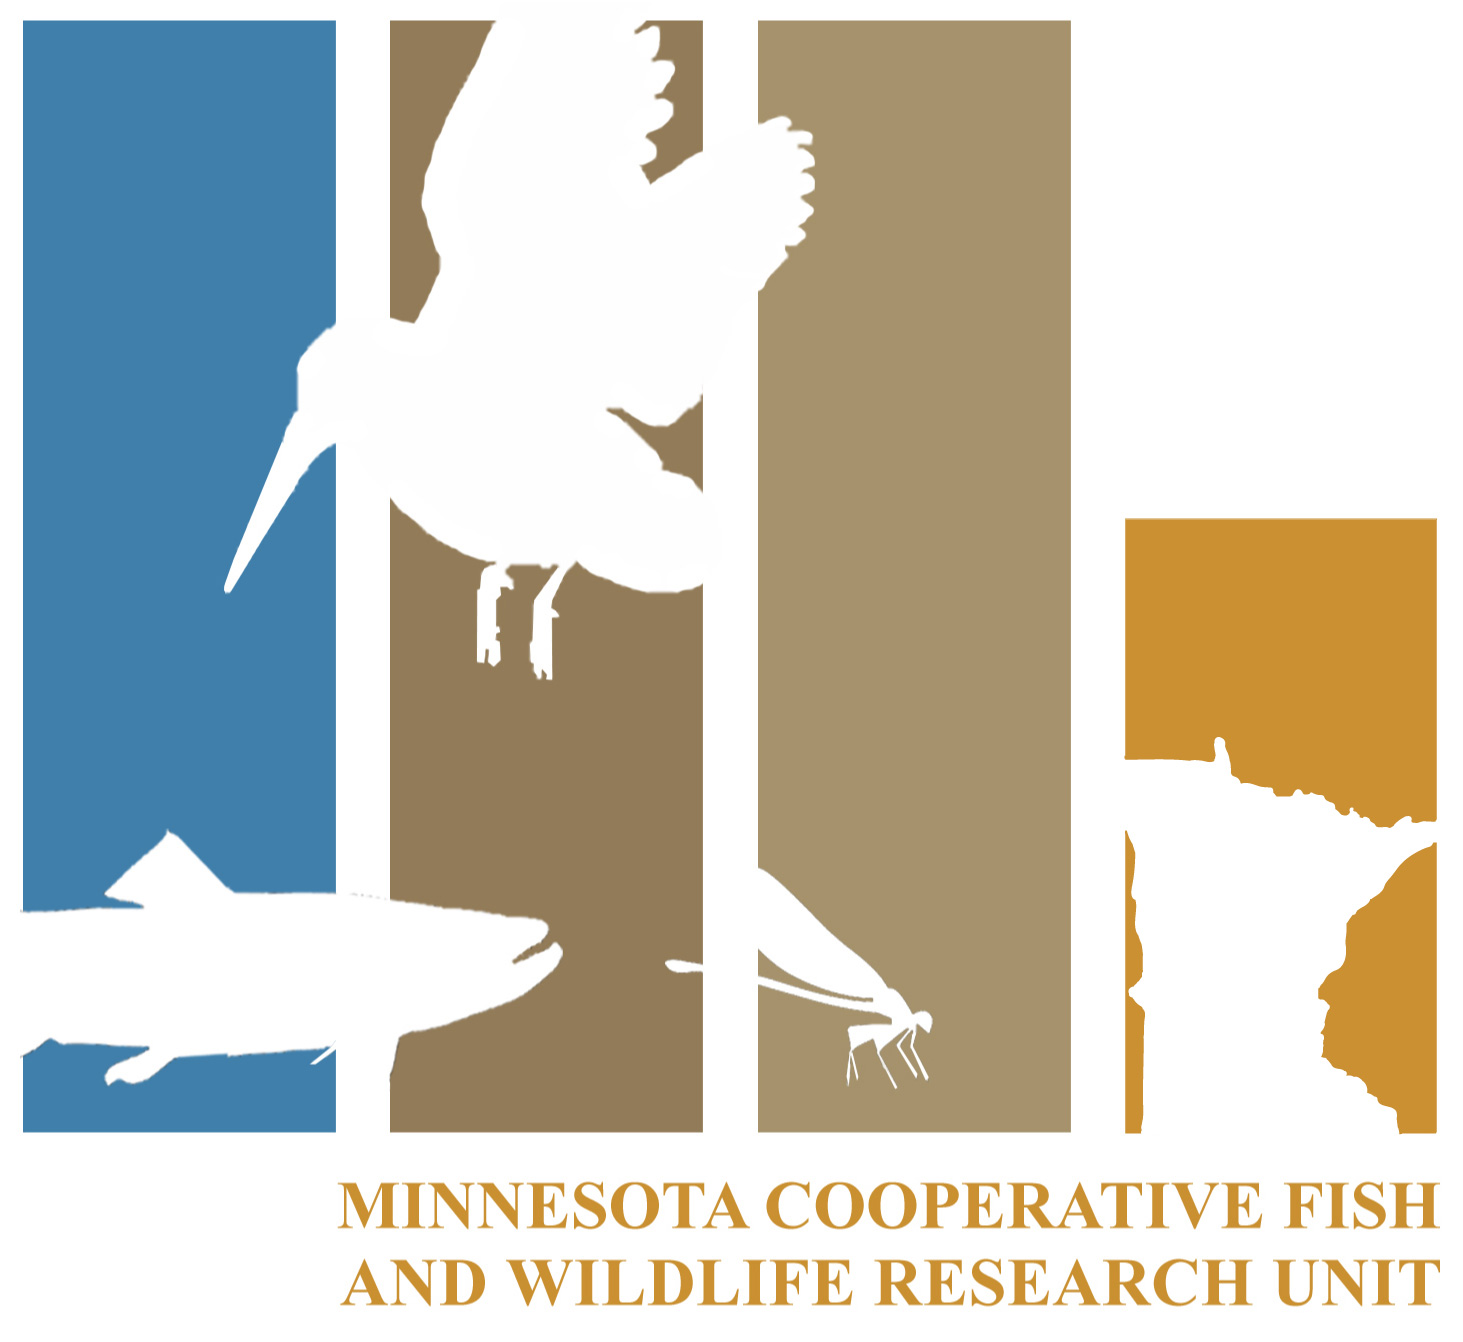 Minnesota Cooperative Fish and Wildlife Research Unit logo